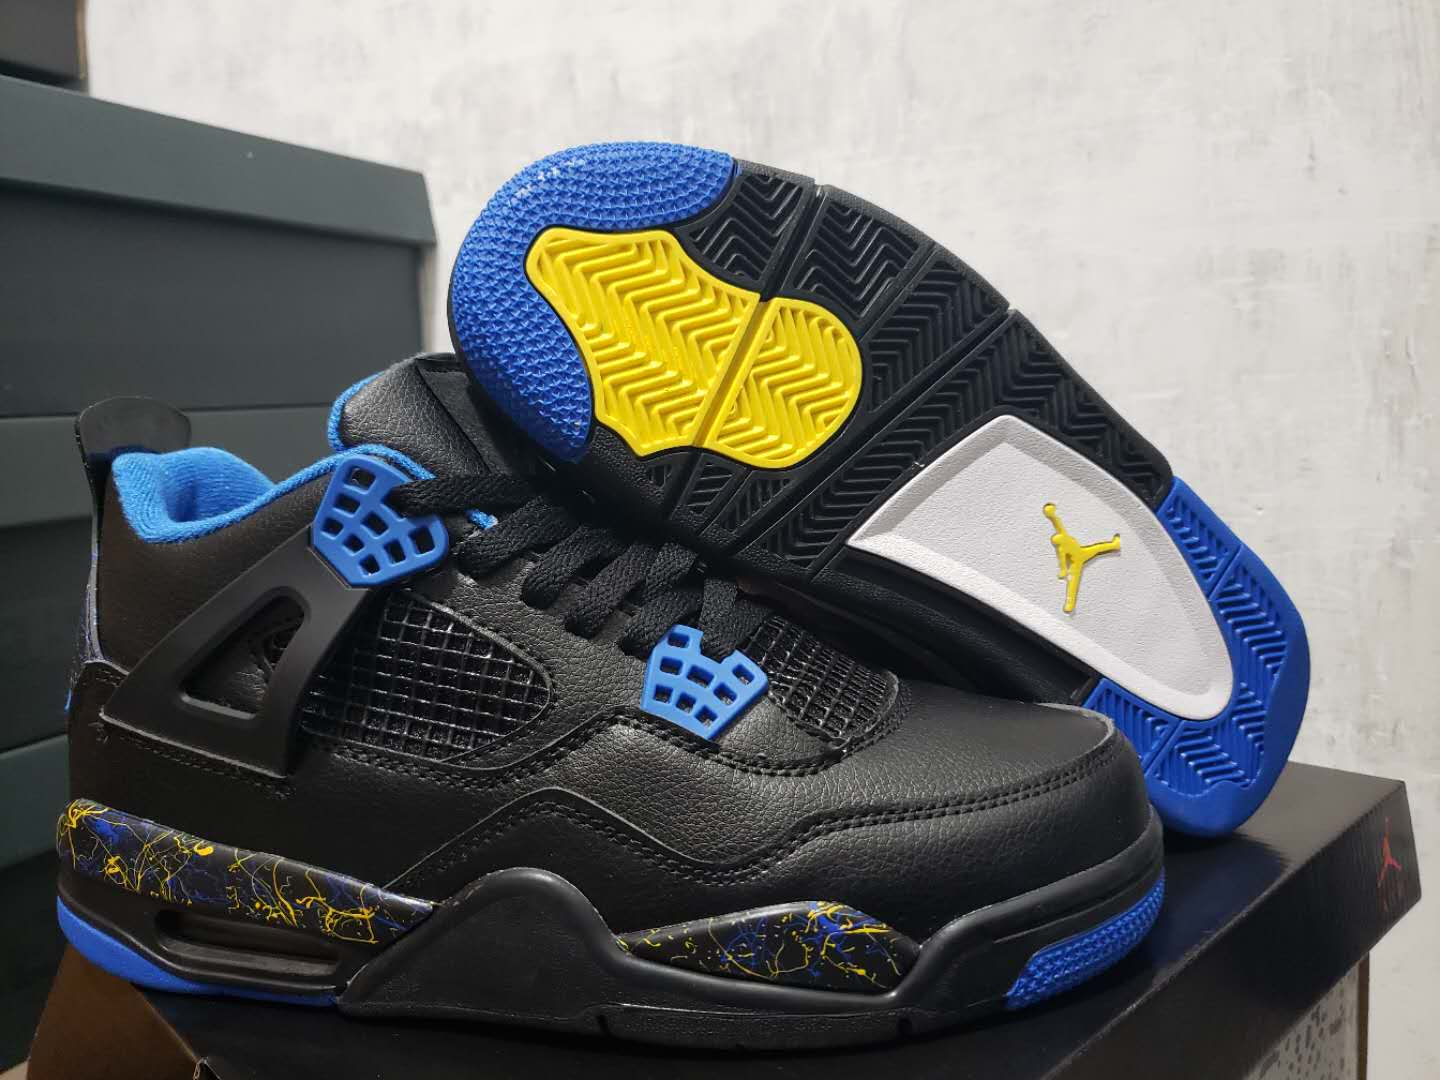 Men's Hot Sale Running weapon Air Jordan 4 shoes 019